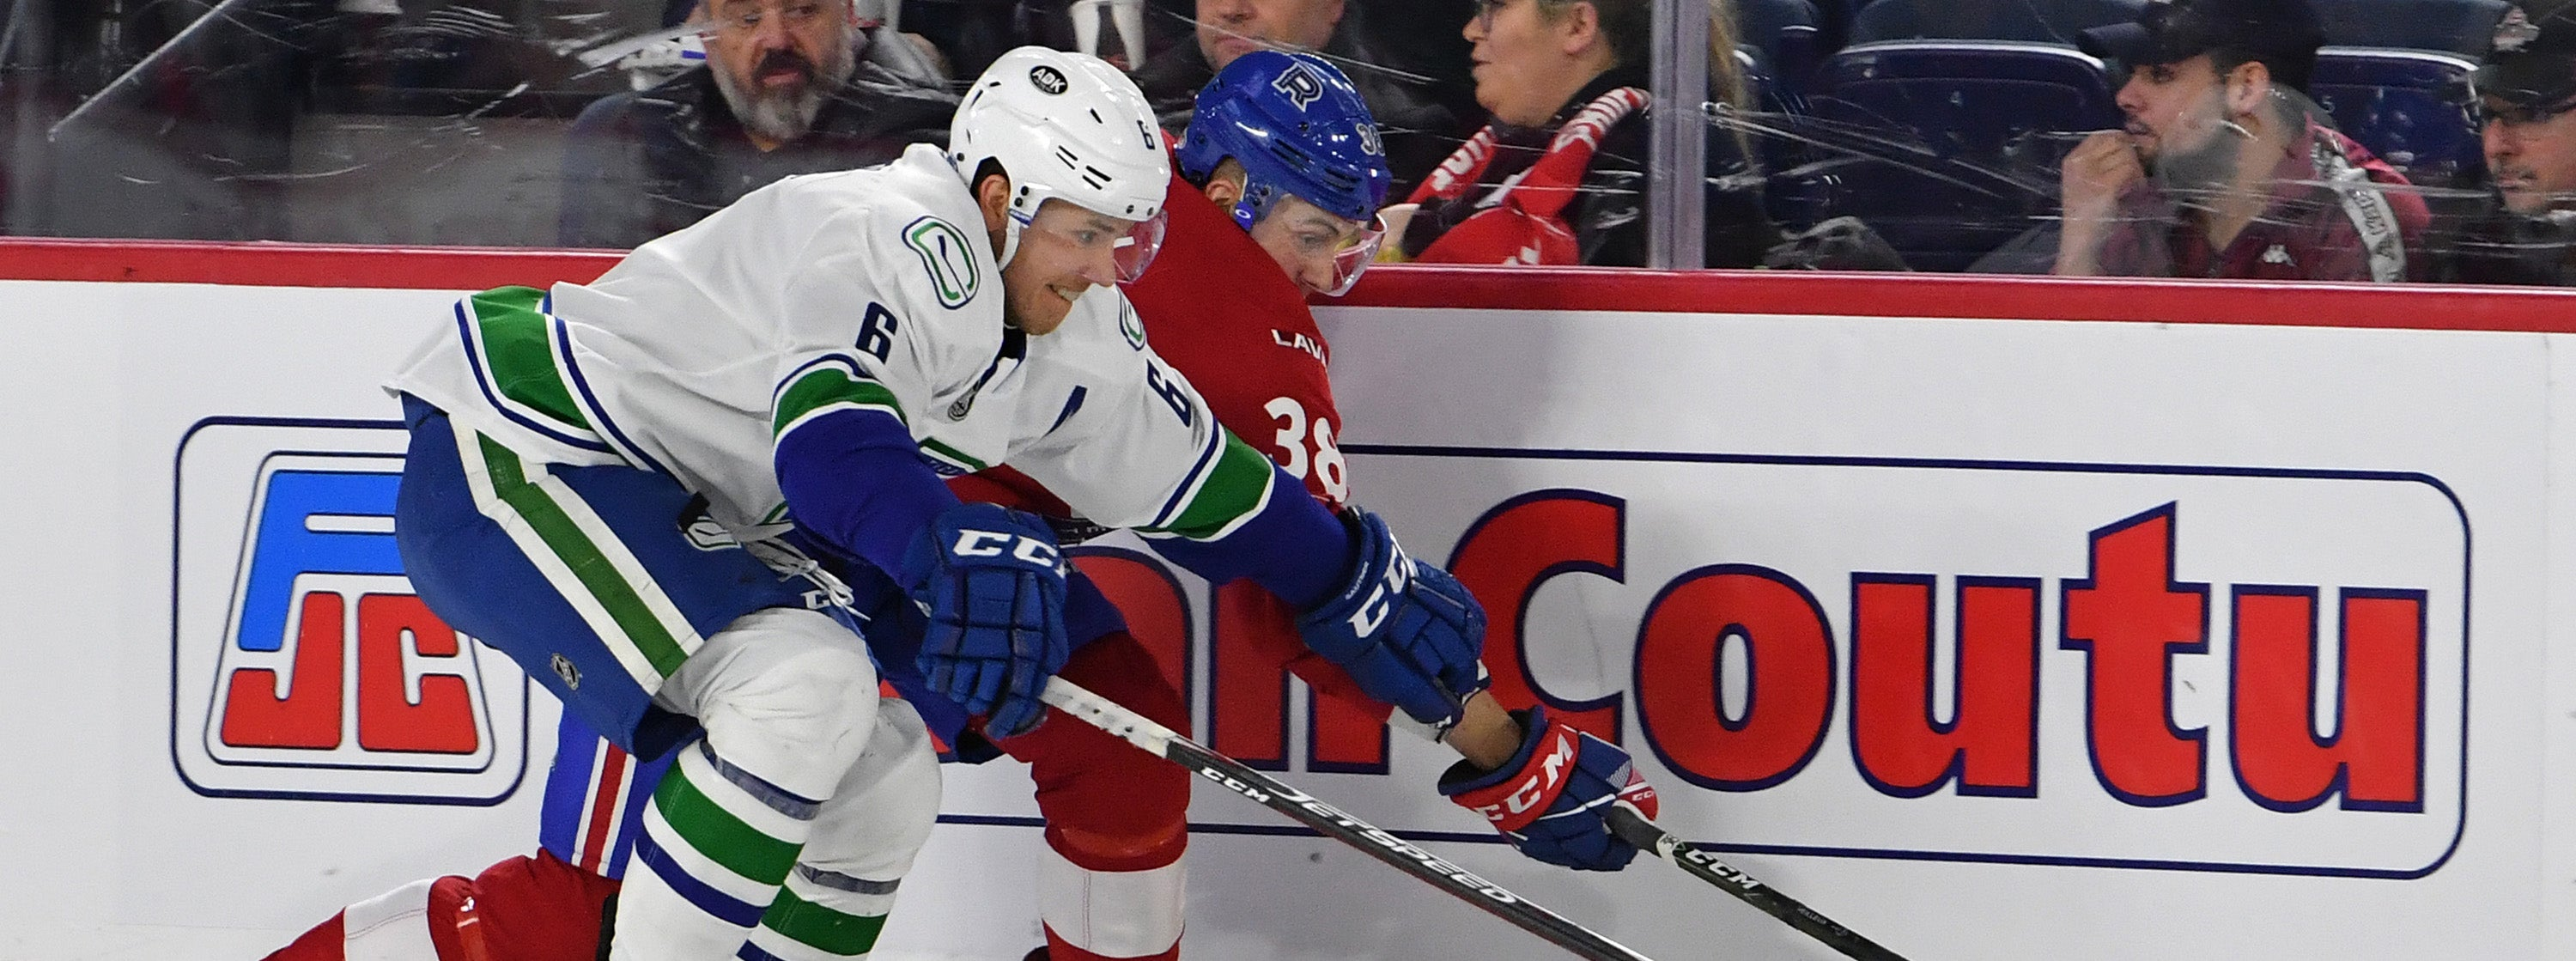 COMETS EARN POINT IN OVERTIME LOSS TO LAVAL